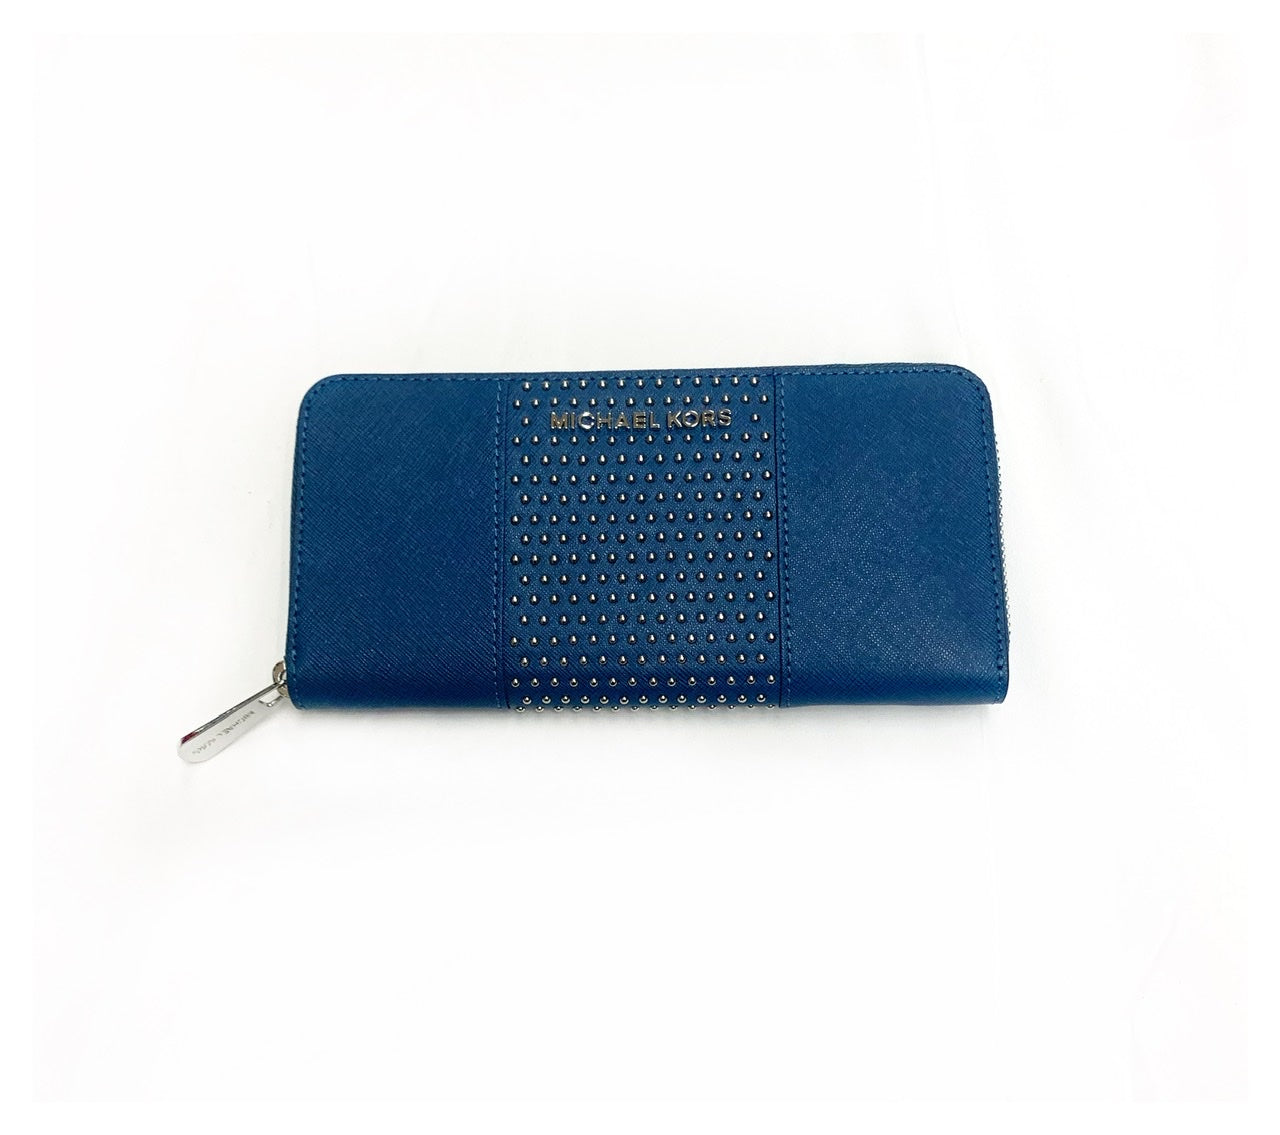 Primary Photo - BRAND: MICHAEL KORS<BR>STYLE: WALLET<BR>COLOR: BLUE<BR>SIZE: MEDIUM<BR>SKU: 196-19692-23951